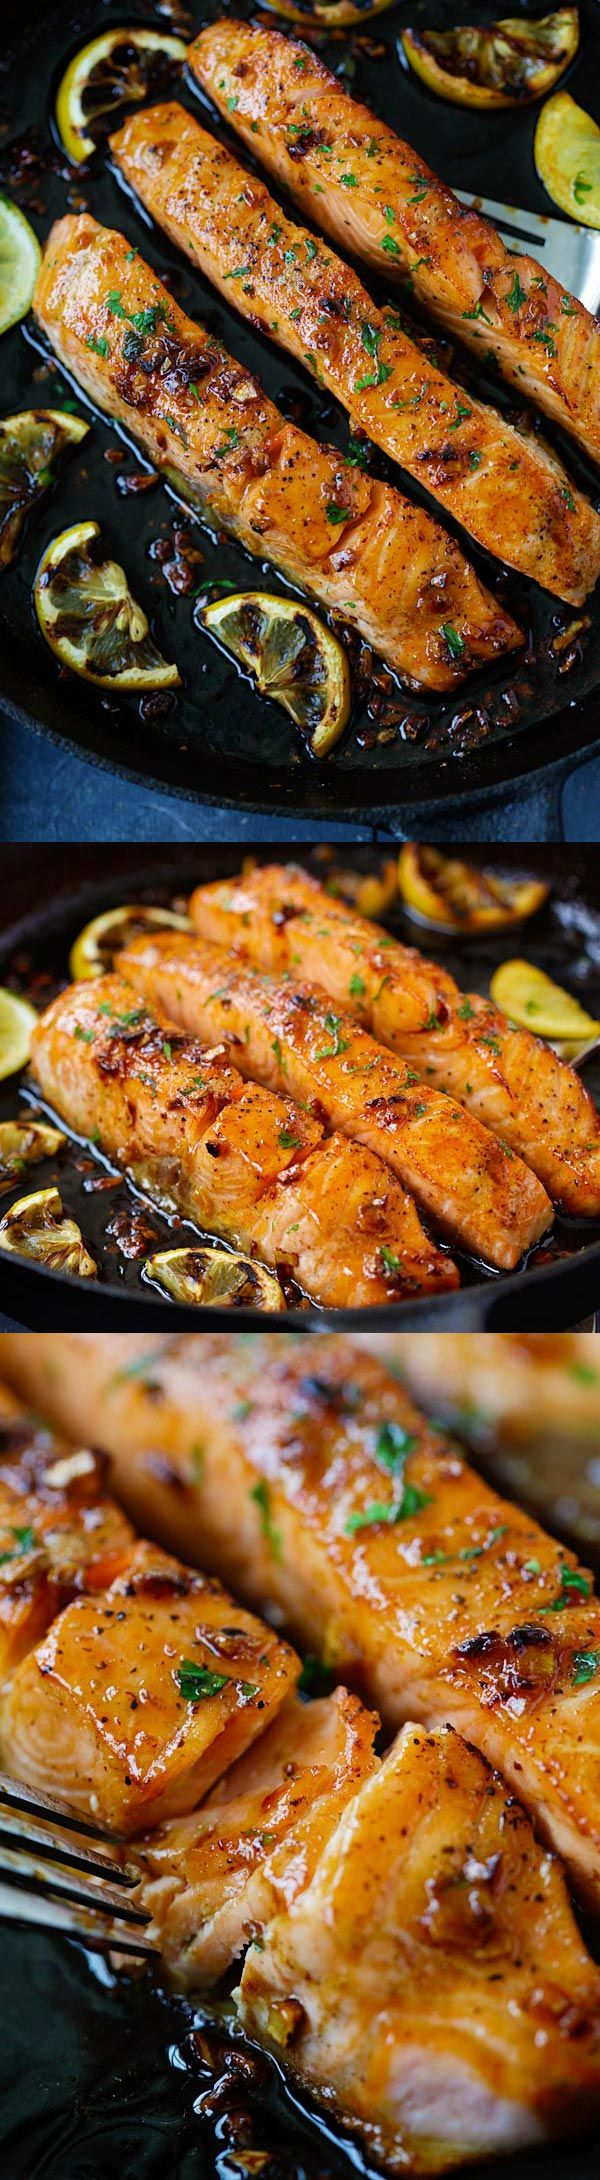 Honey Garlic Salmon - Delicious garlicky, sweet and sticky salmon with simple ingredients. Only takes 20 minutes!